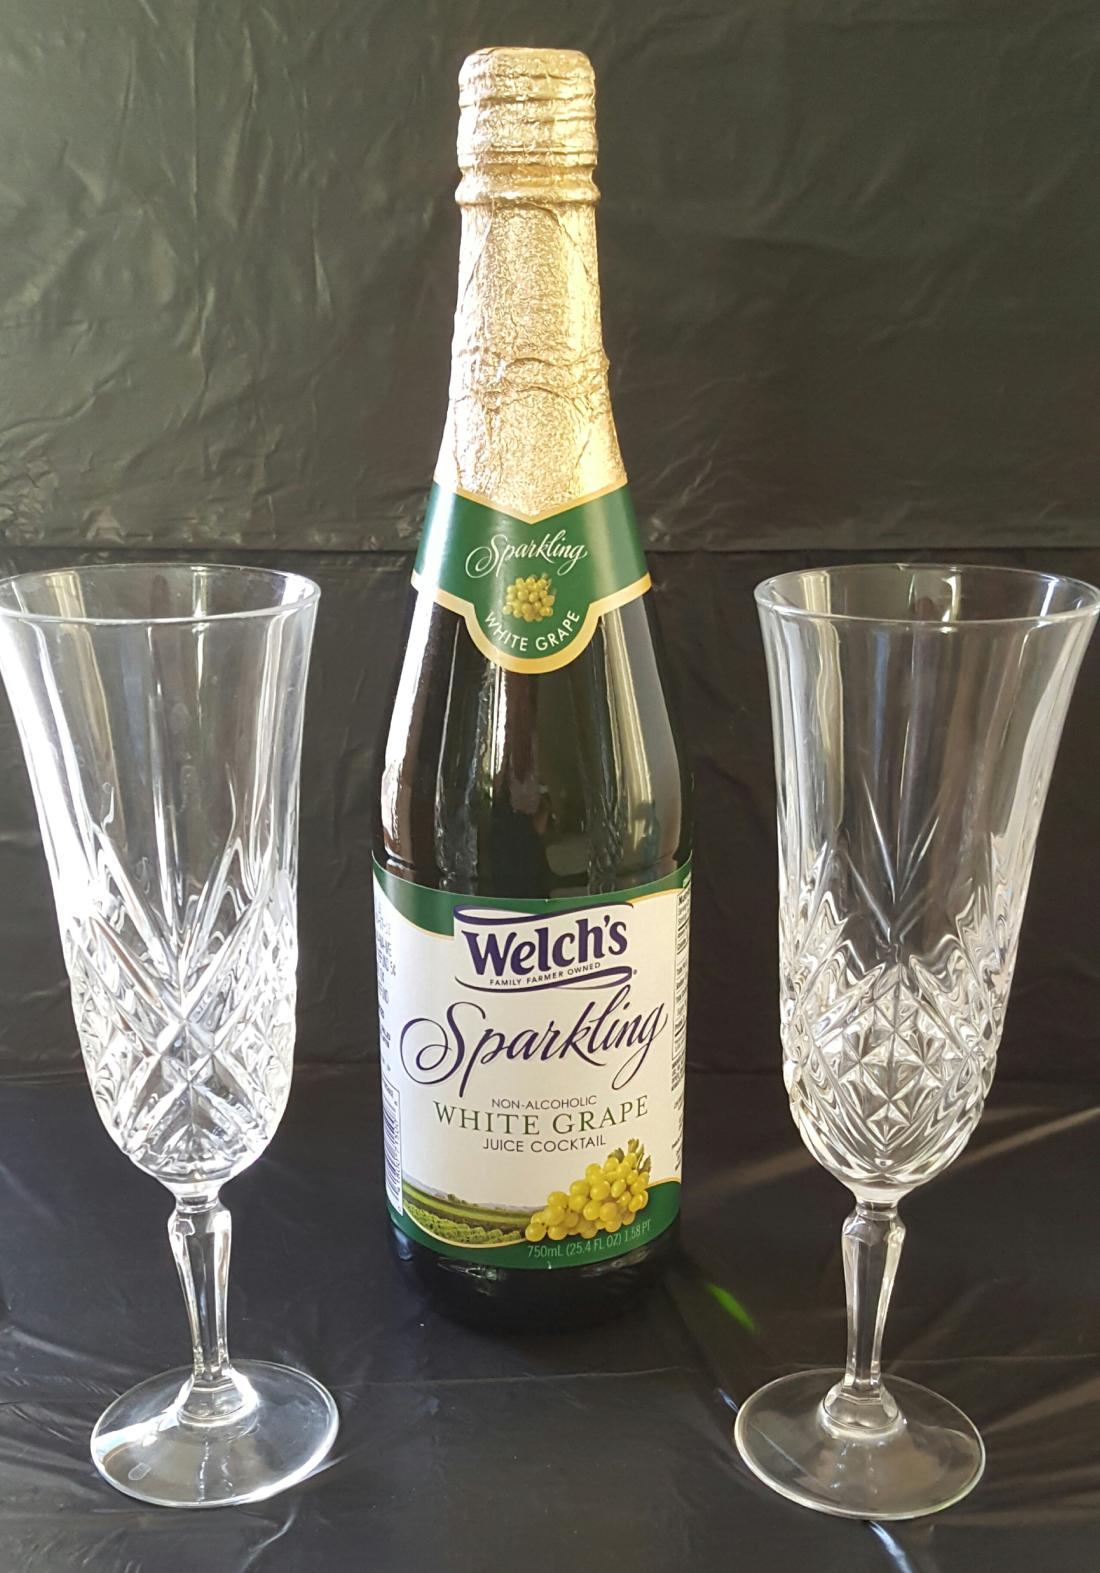 Non Alcoholic Wine Welch 39s Sparkling Non Alcoholic Wine Related Keywords